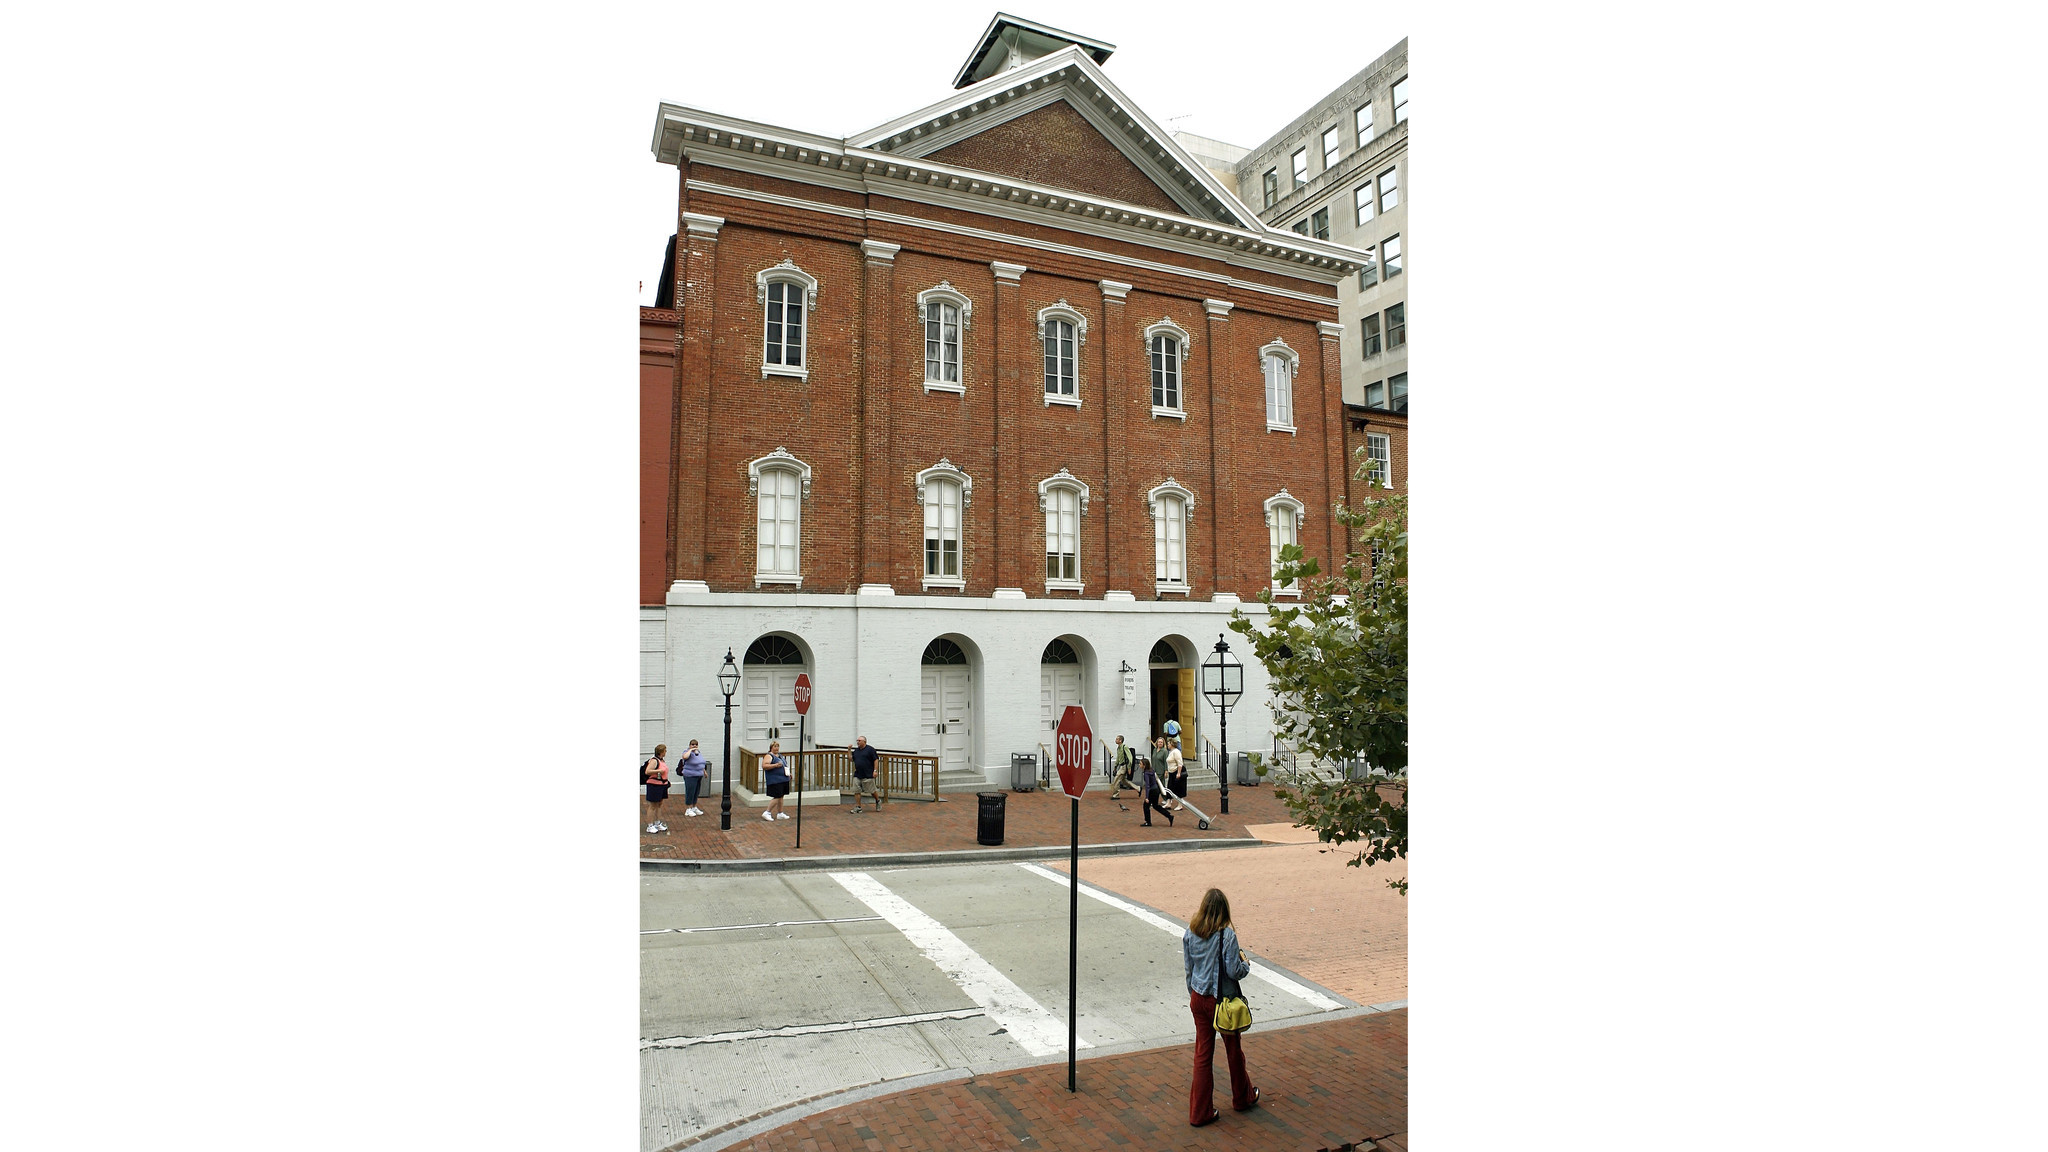 National park tips: See the drama unfold at Ford's Theatre in D.C., where Lincoln was assassinated